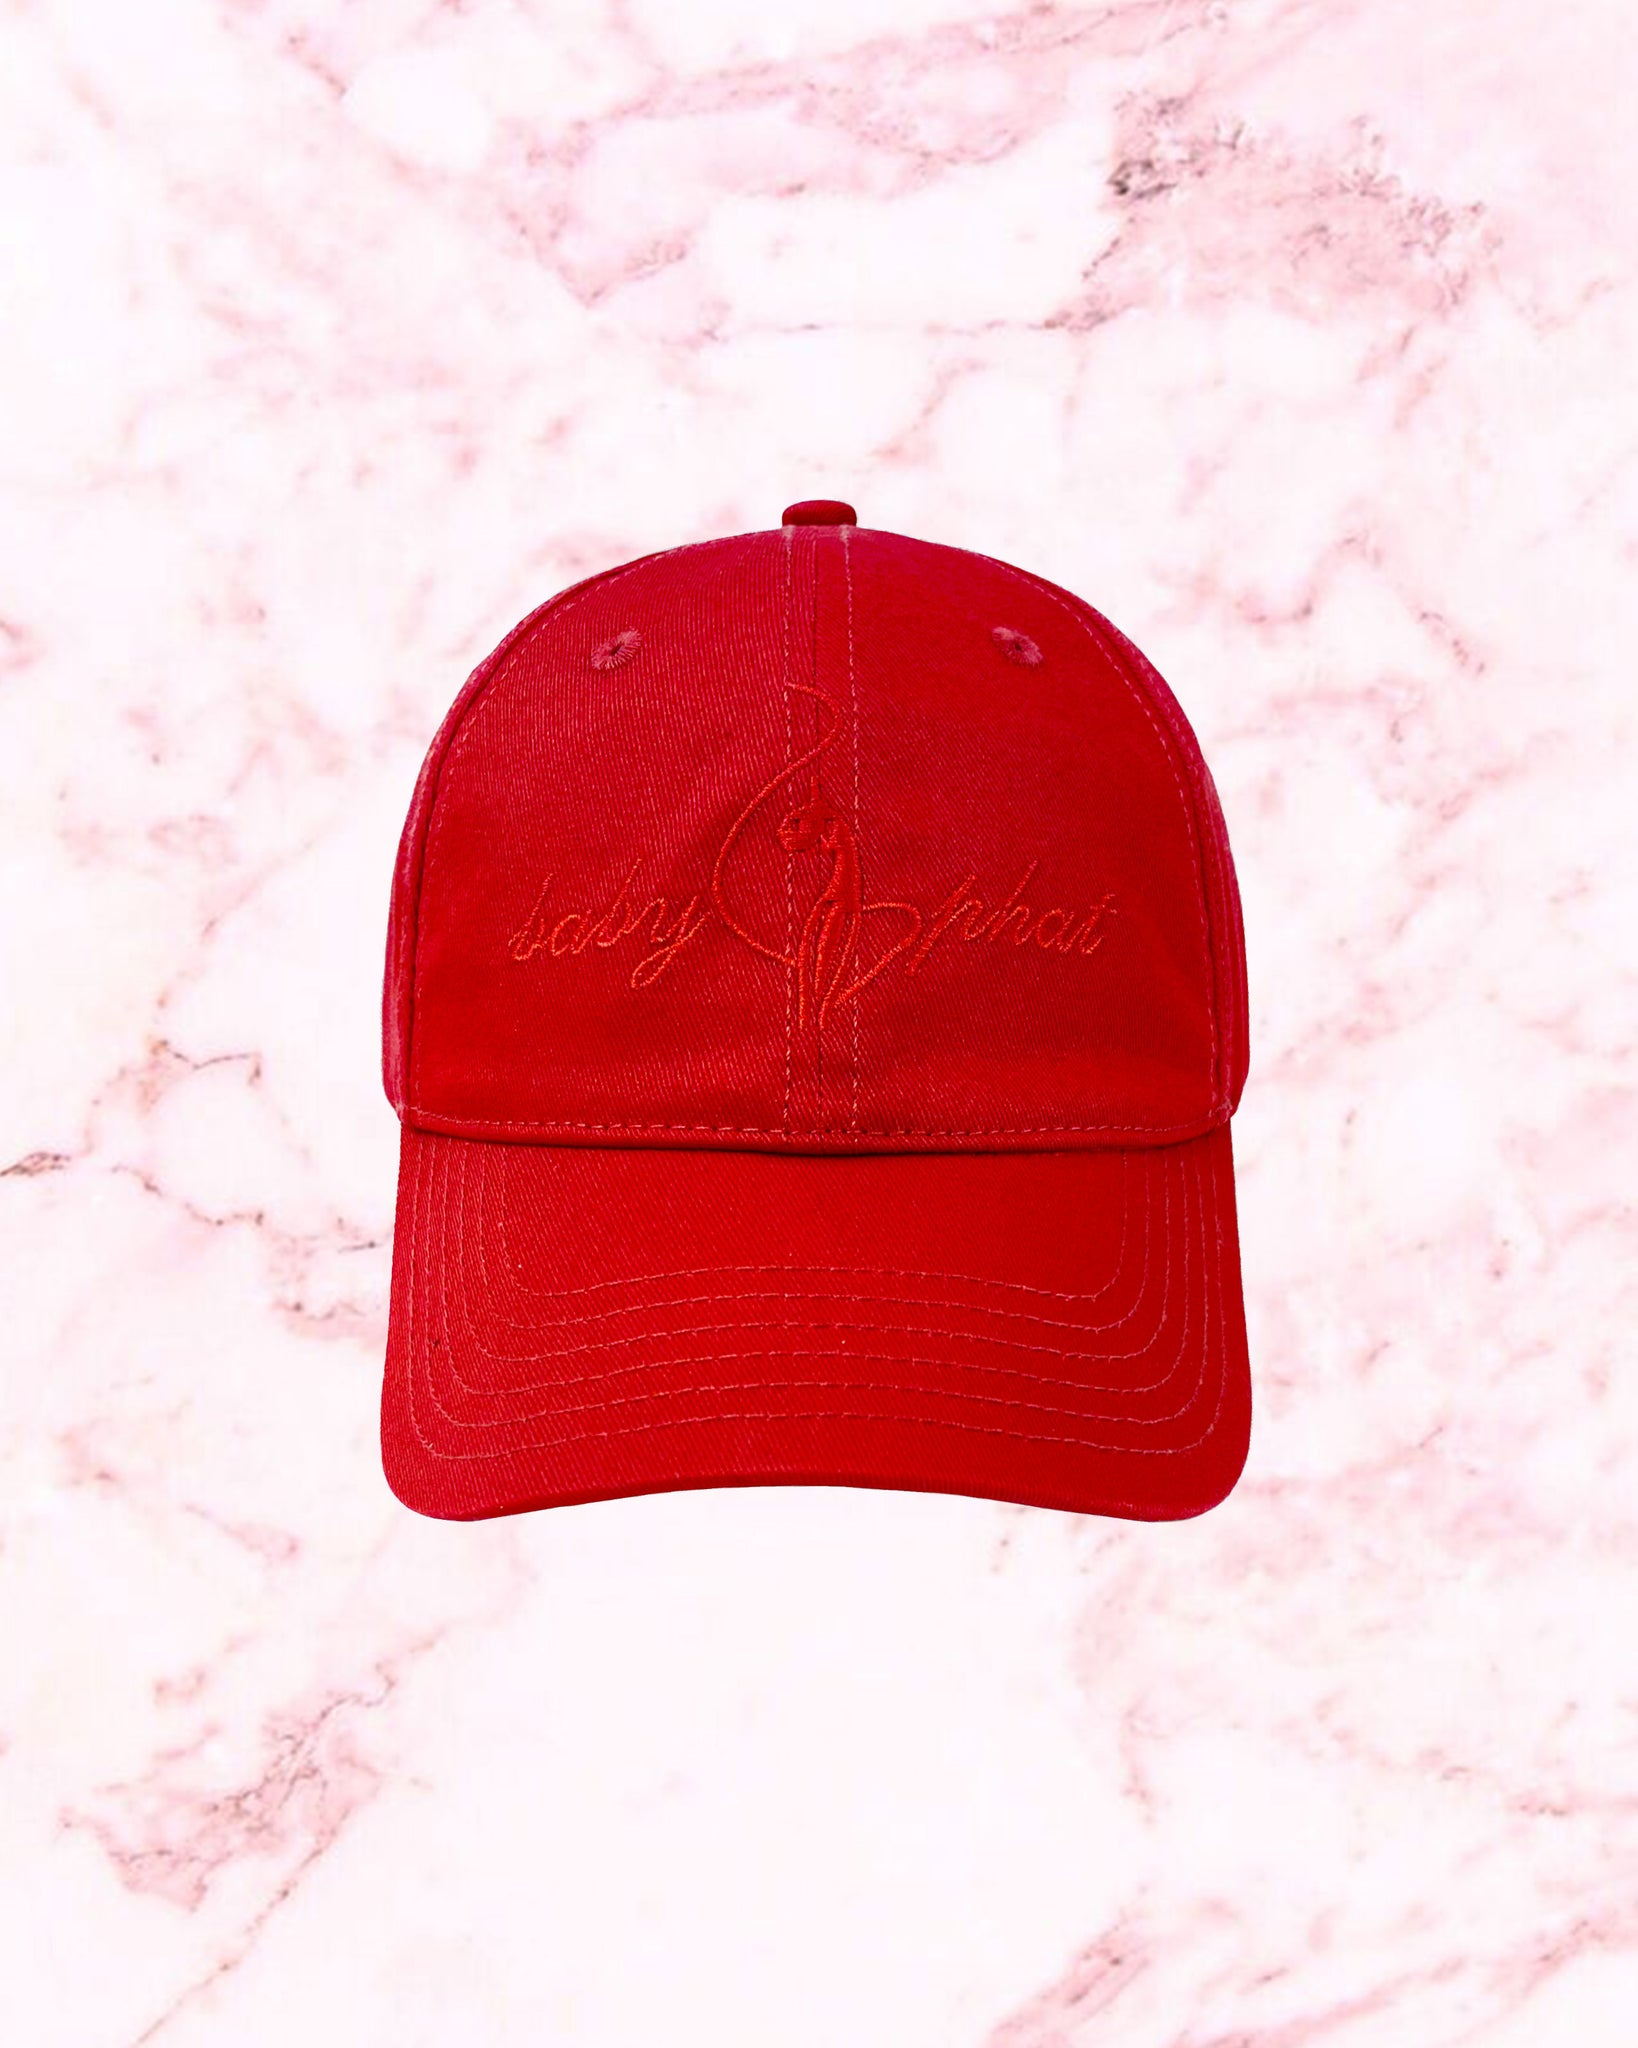 Red baseball hat features Baby Phat logo embroidered at front.